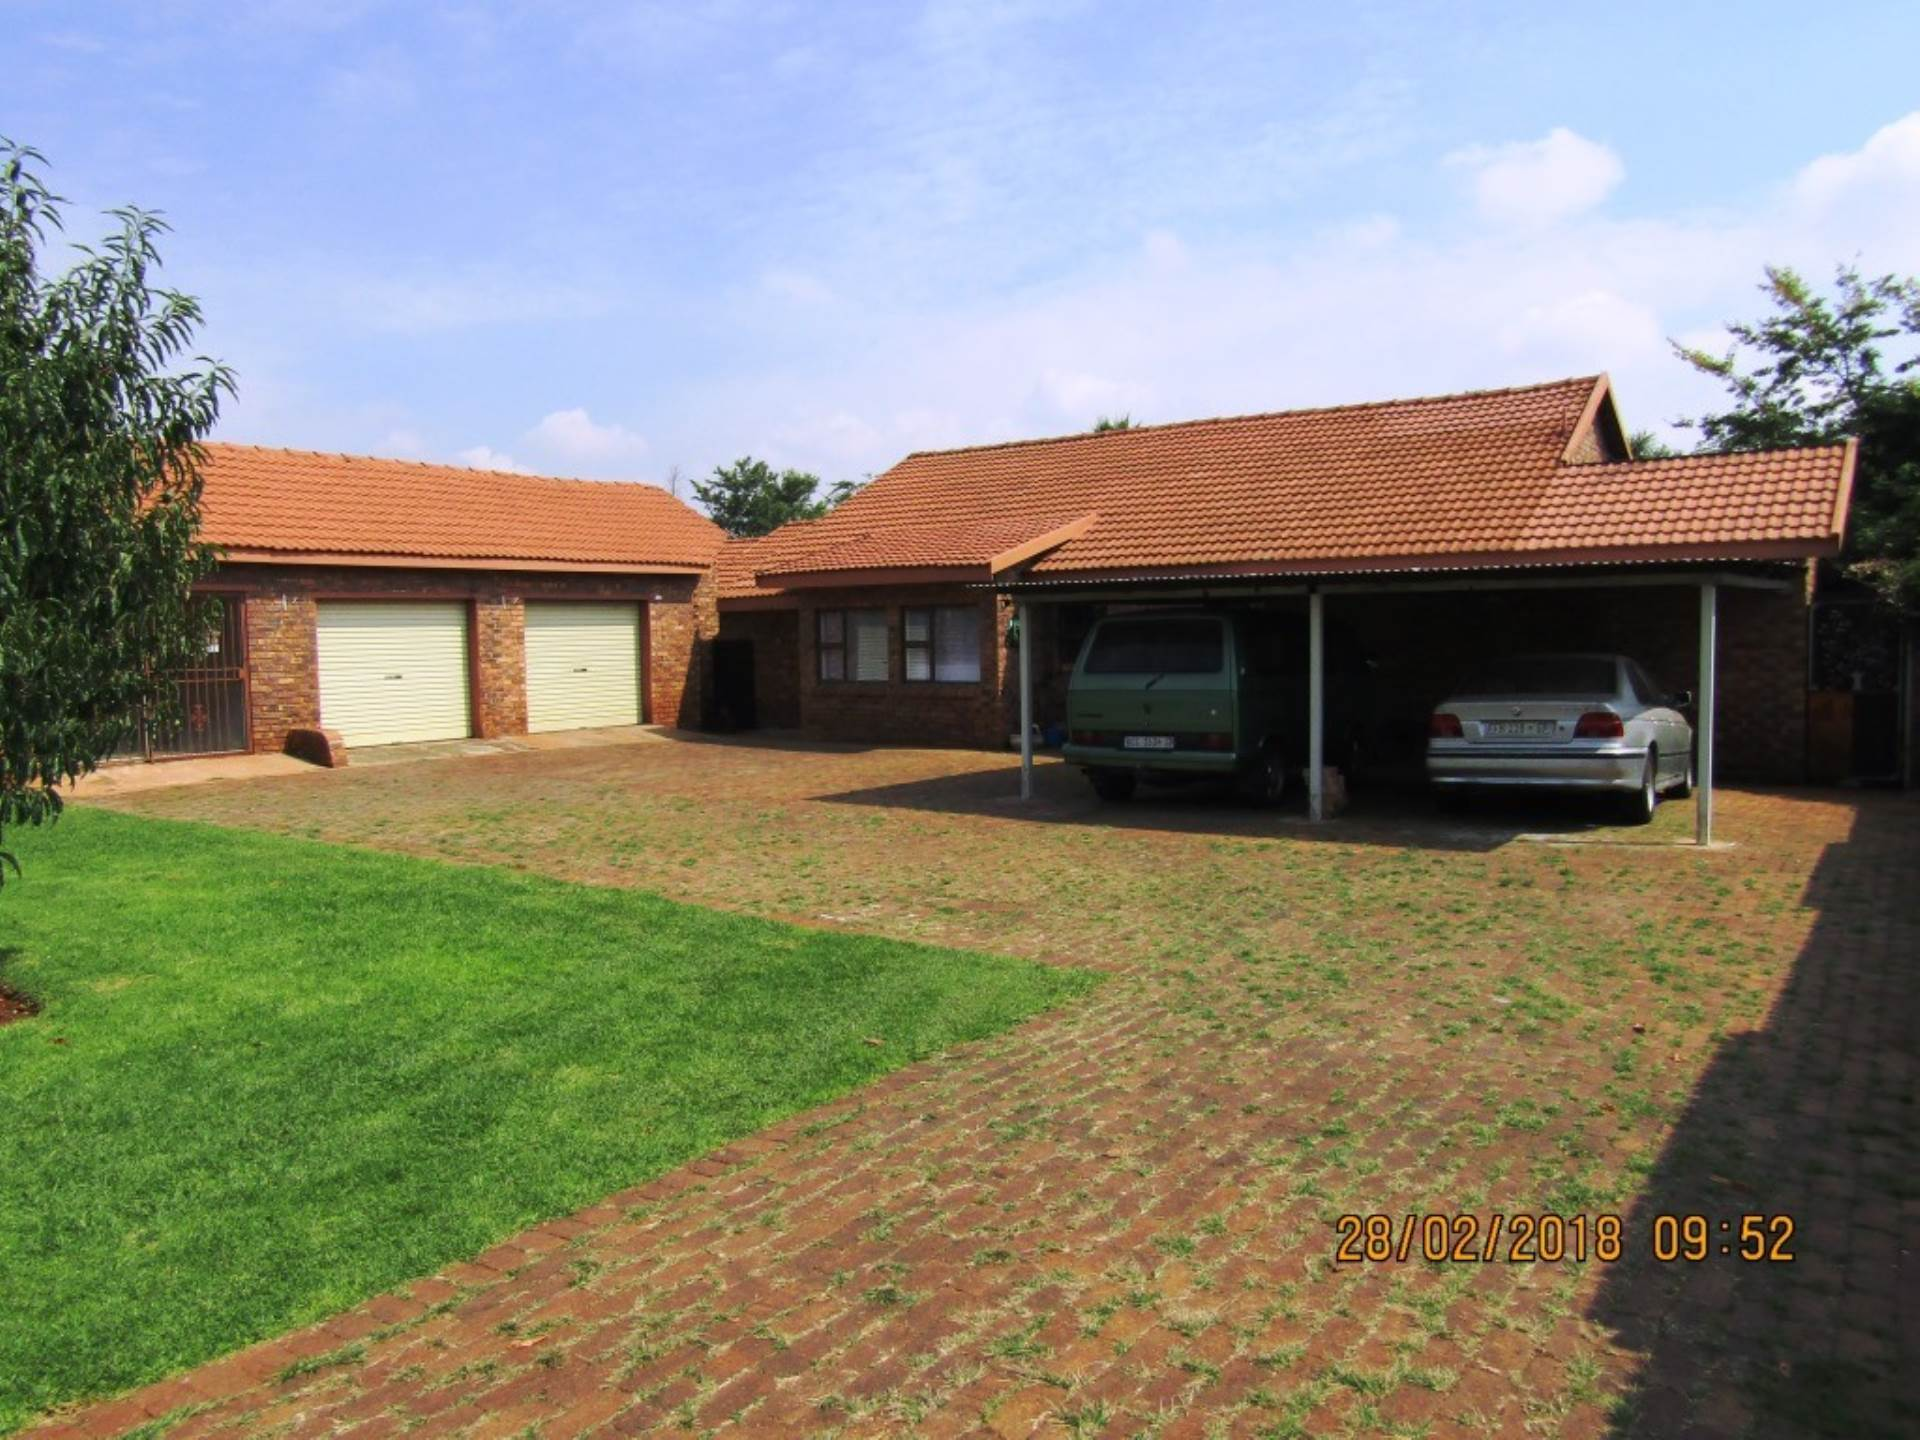 3 BedroomHouse For Sale In Daggafontein